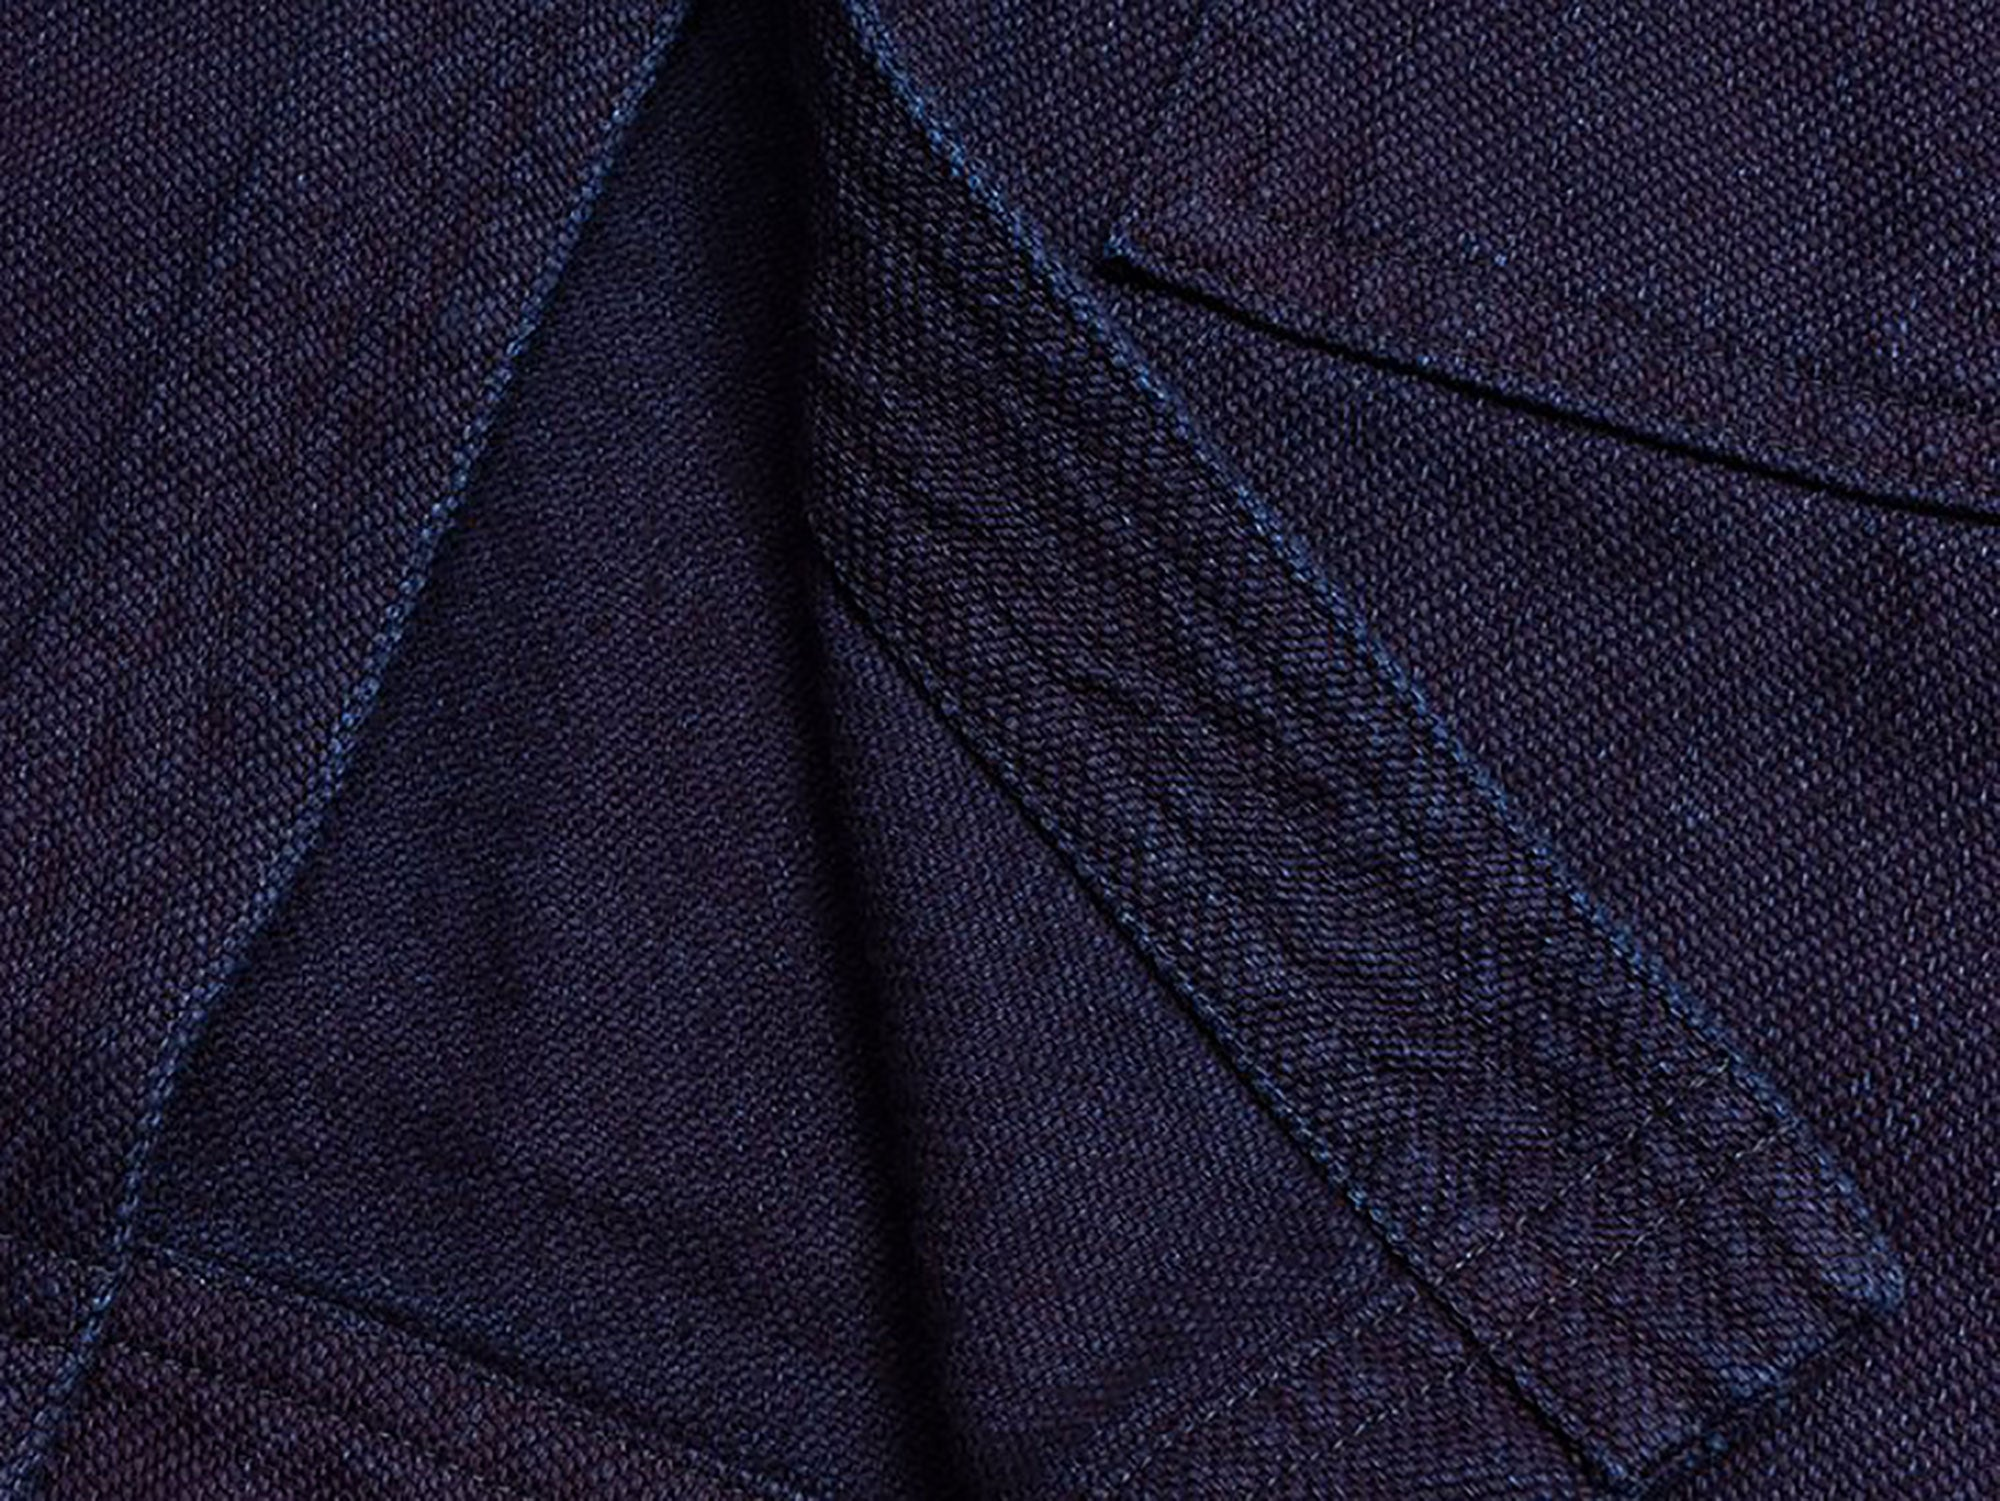 Indigo Sashiko close up